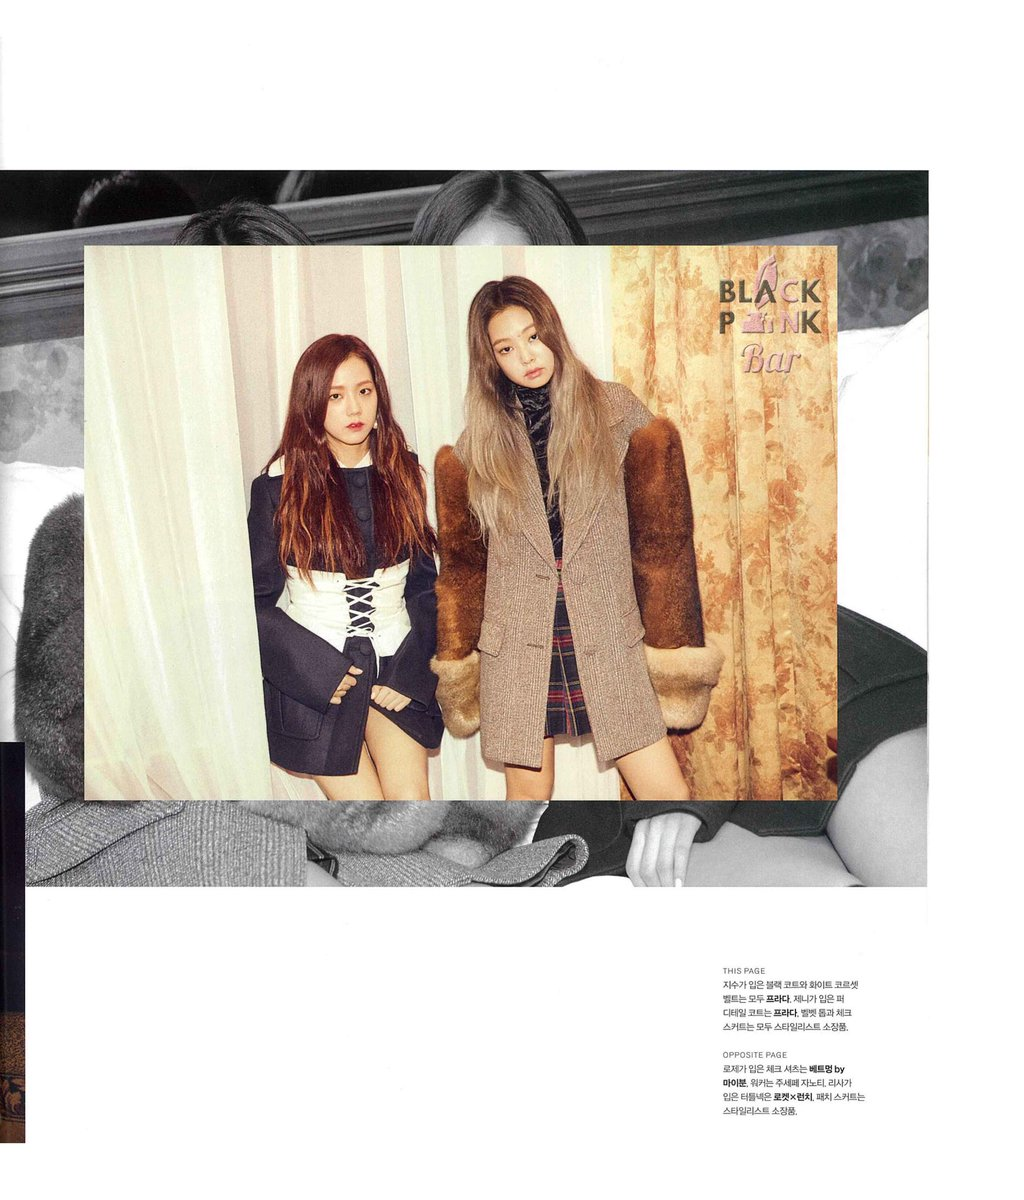 Popular Content Nylon Magazine Scans